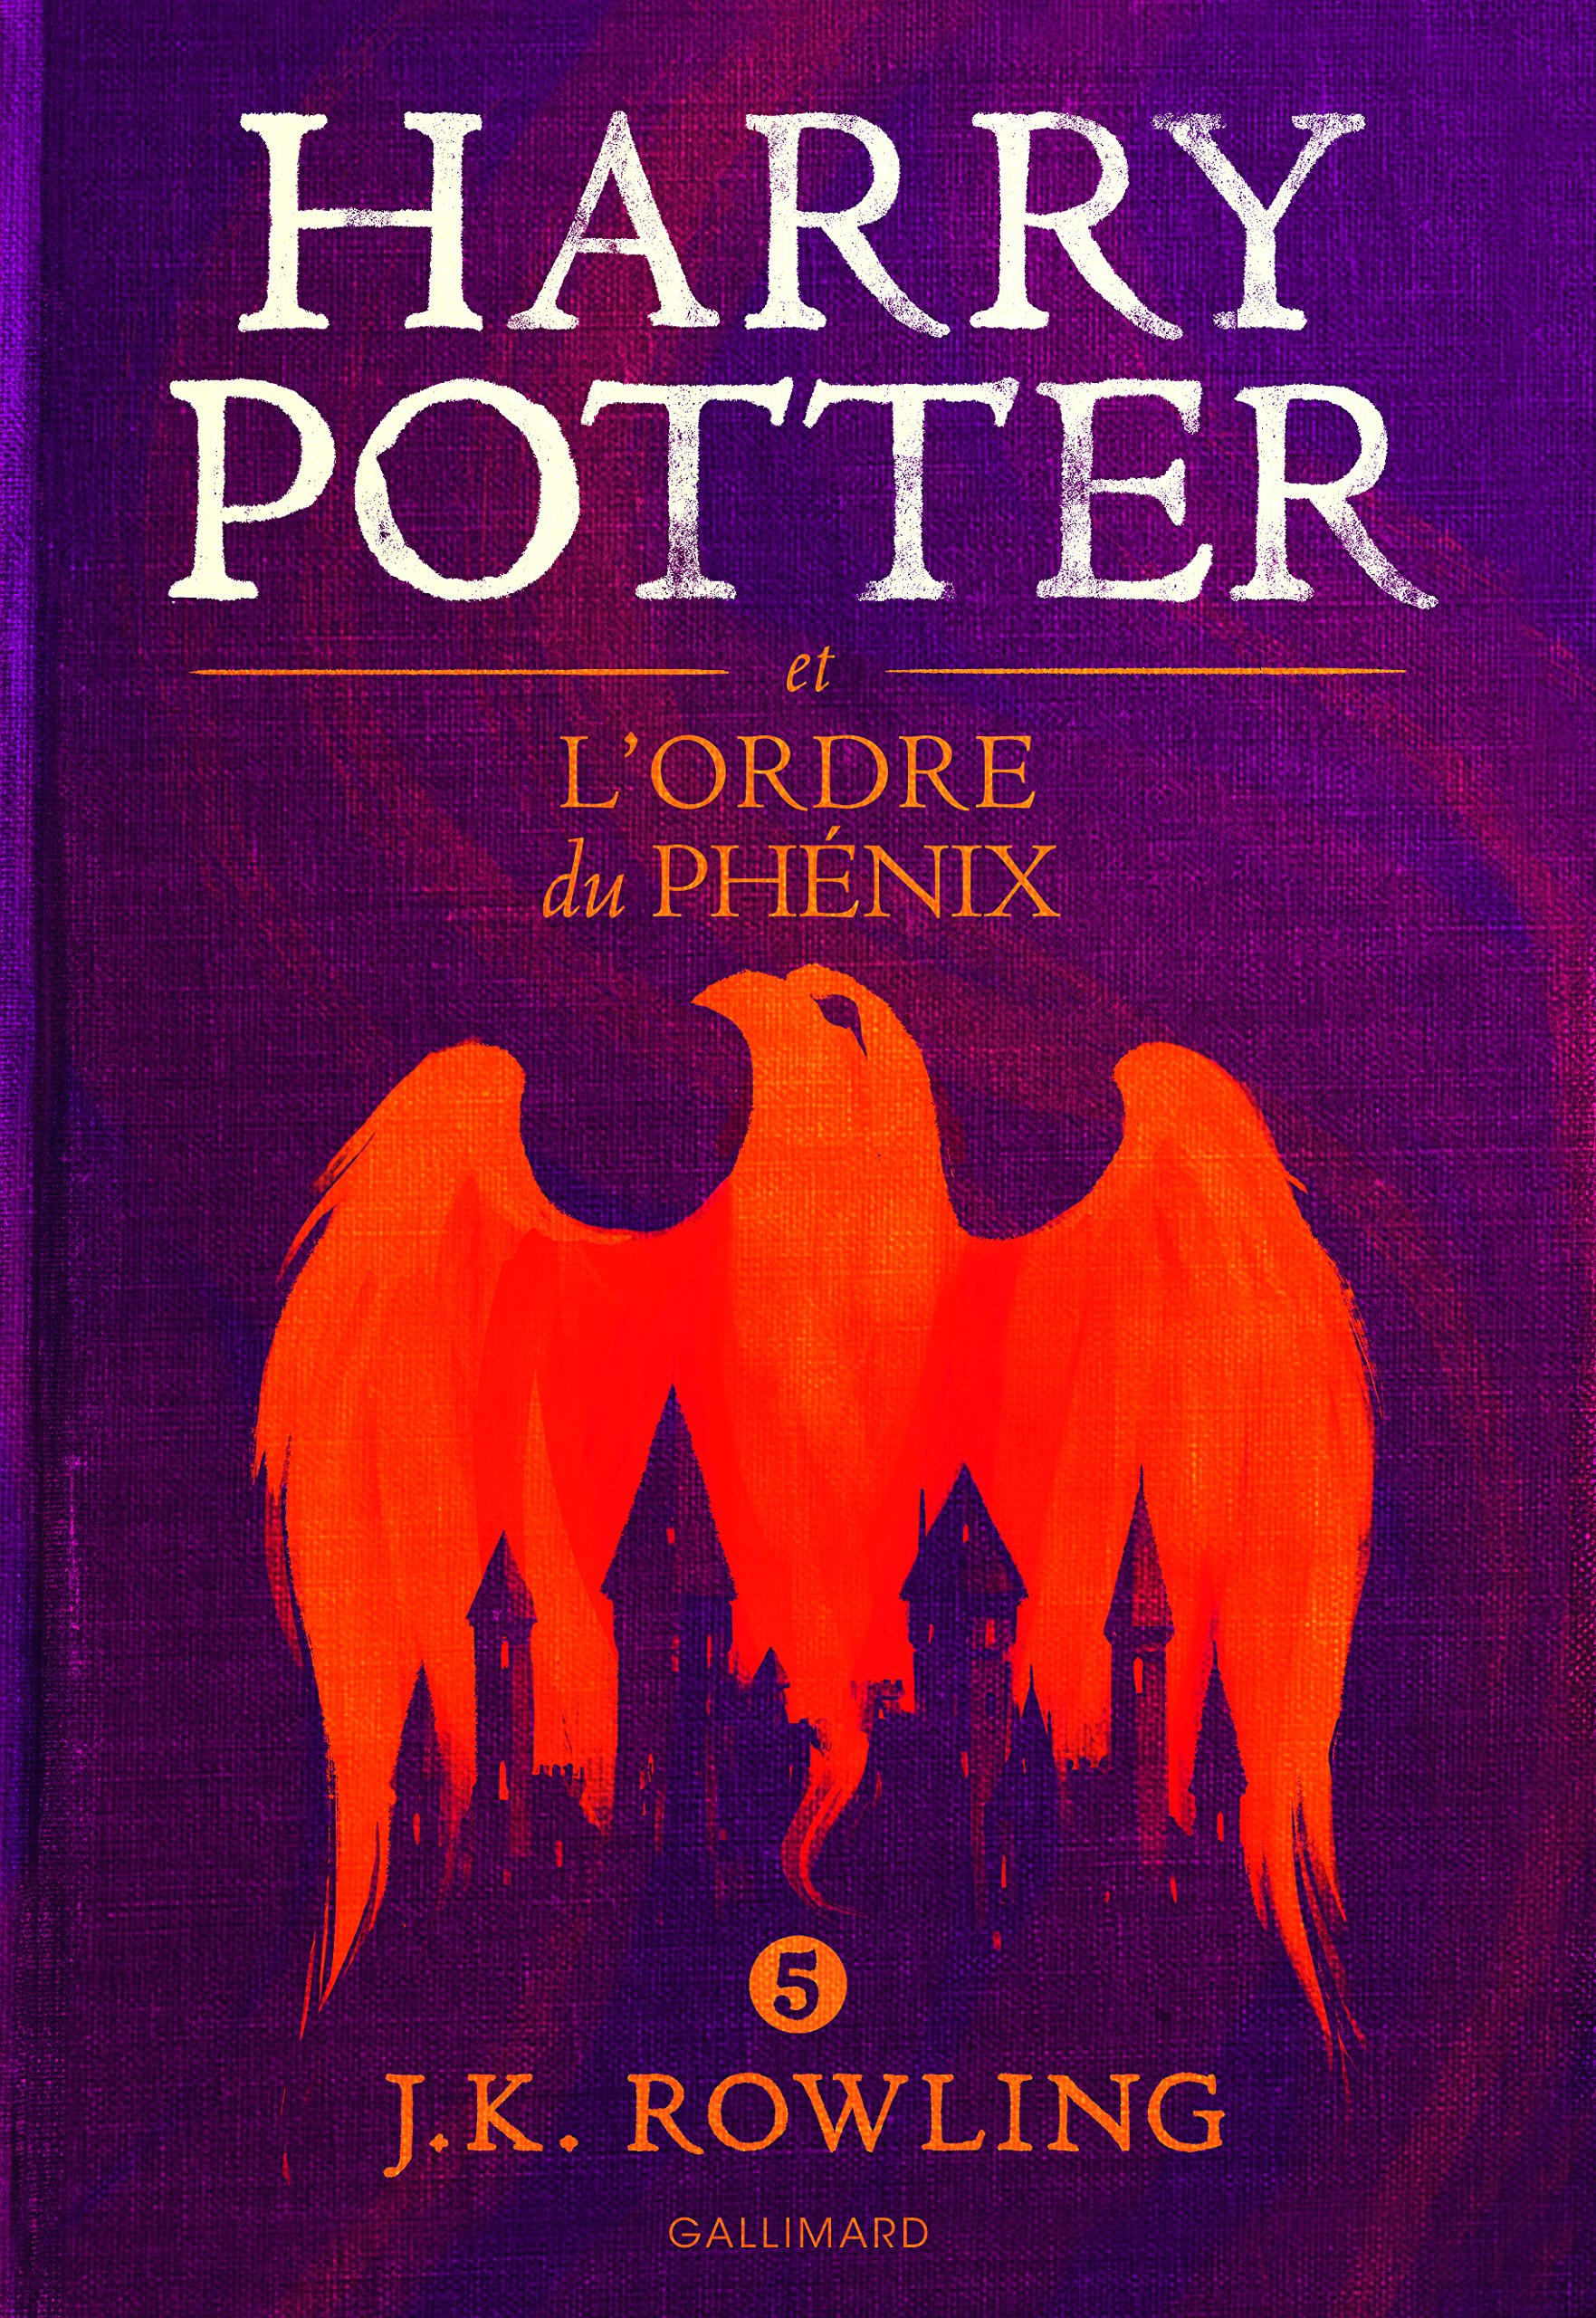 Harry Potter, V : Harry Potter et l'Ordre du Phénix - grand format [ Harry Potter and the Order of the Phoenix ] large format (French Edition) ebook